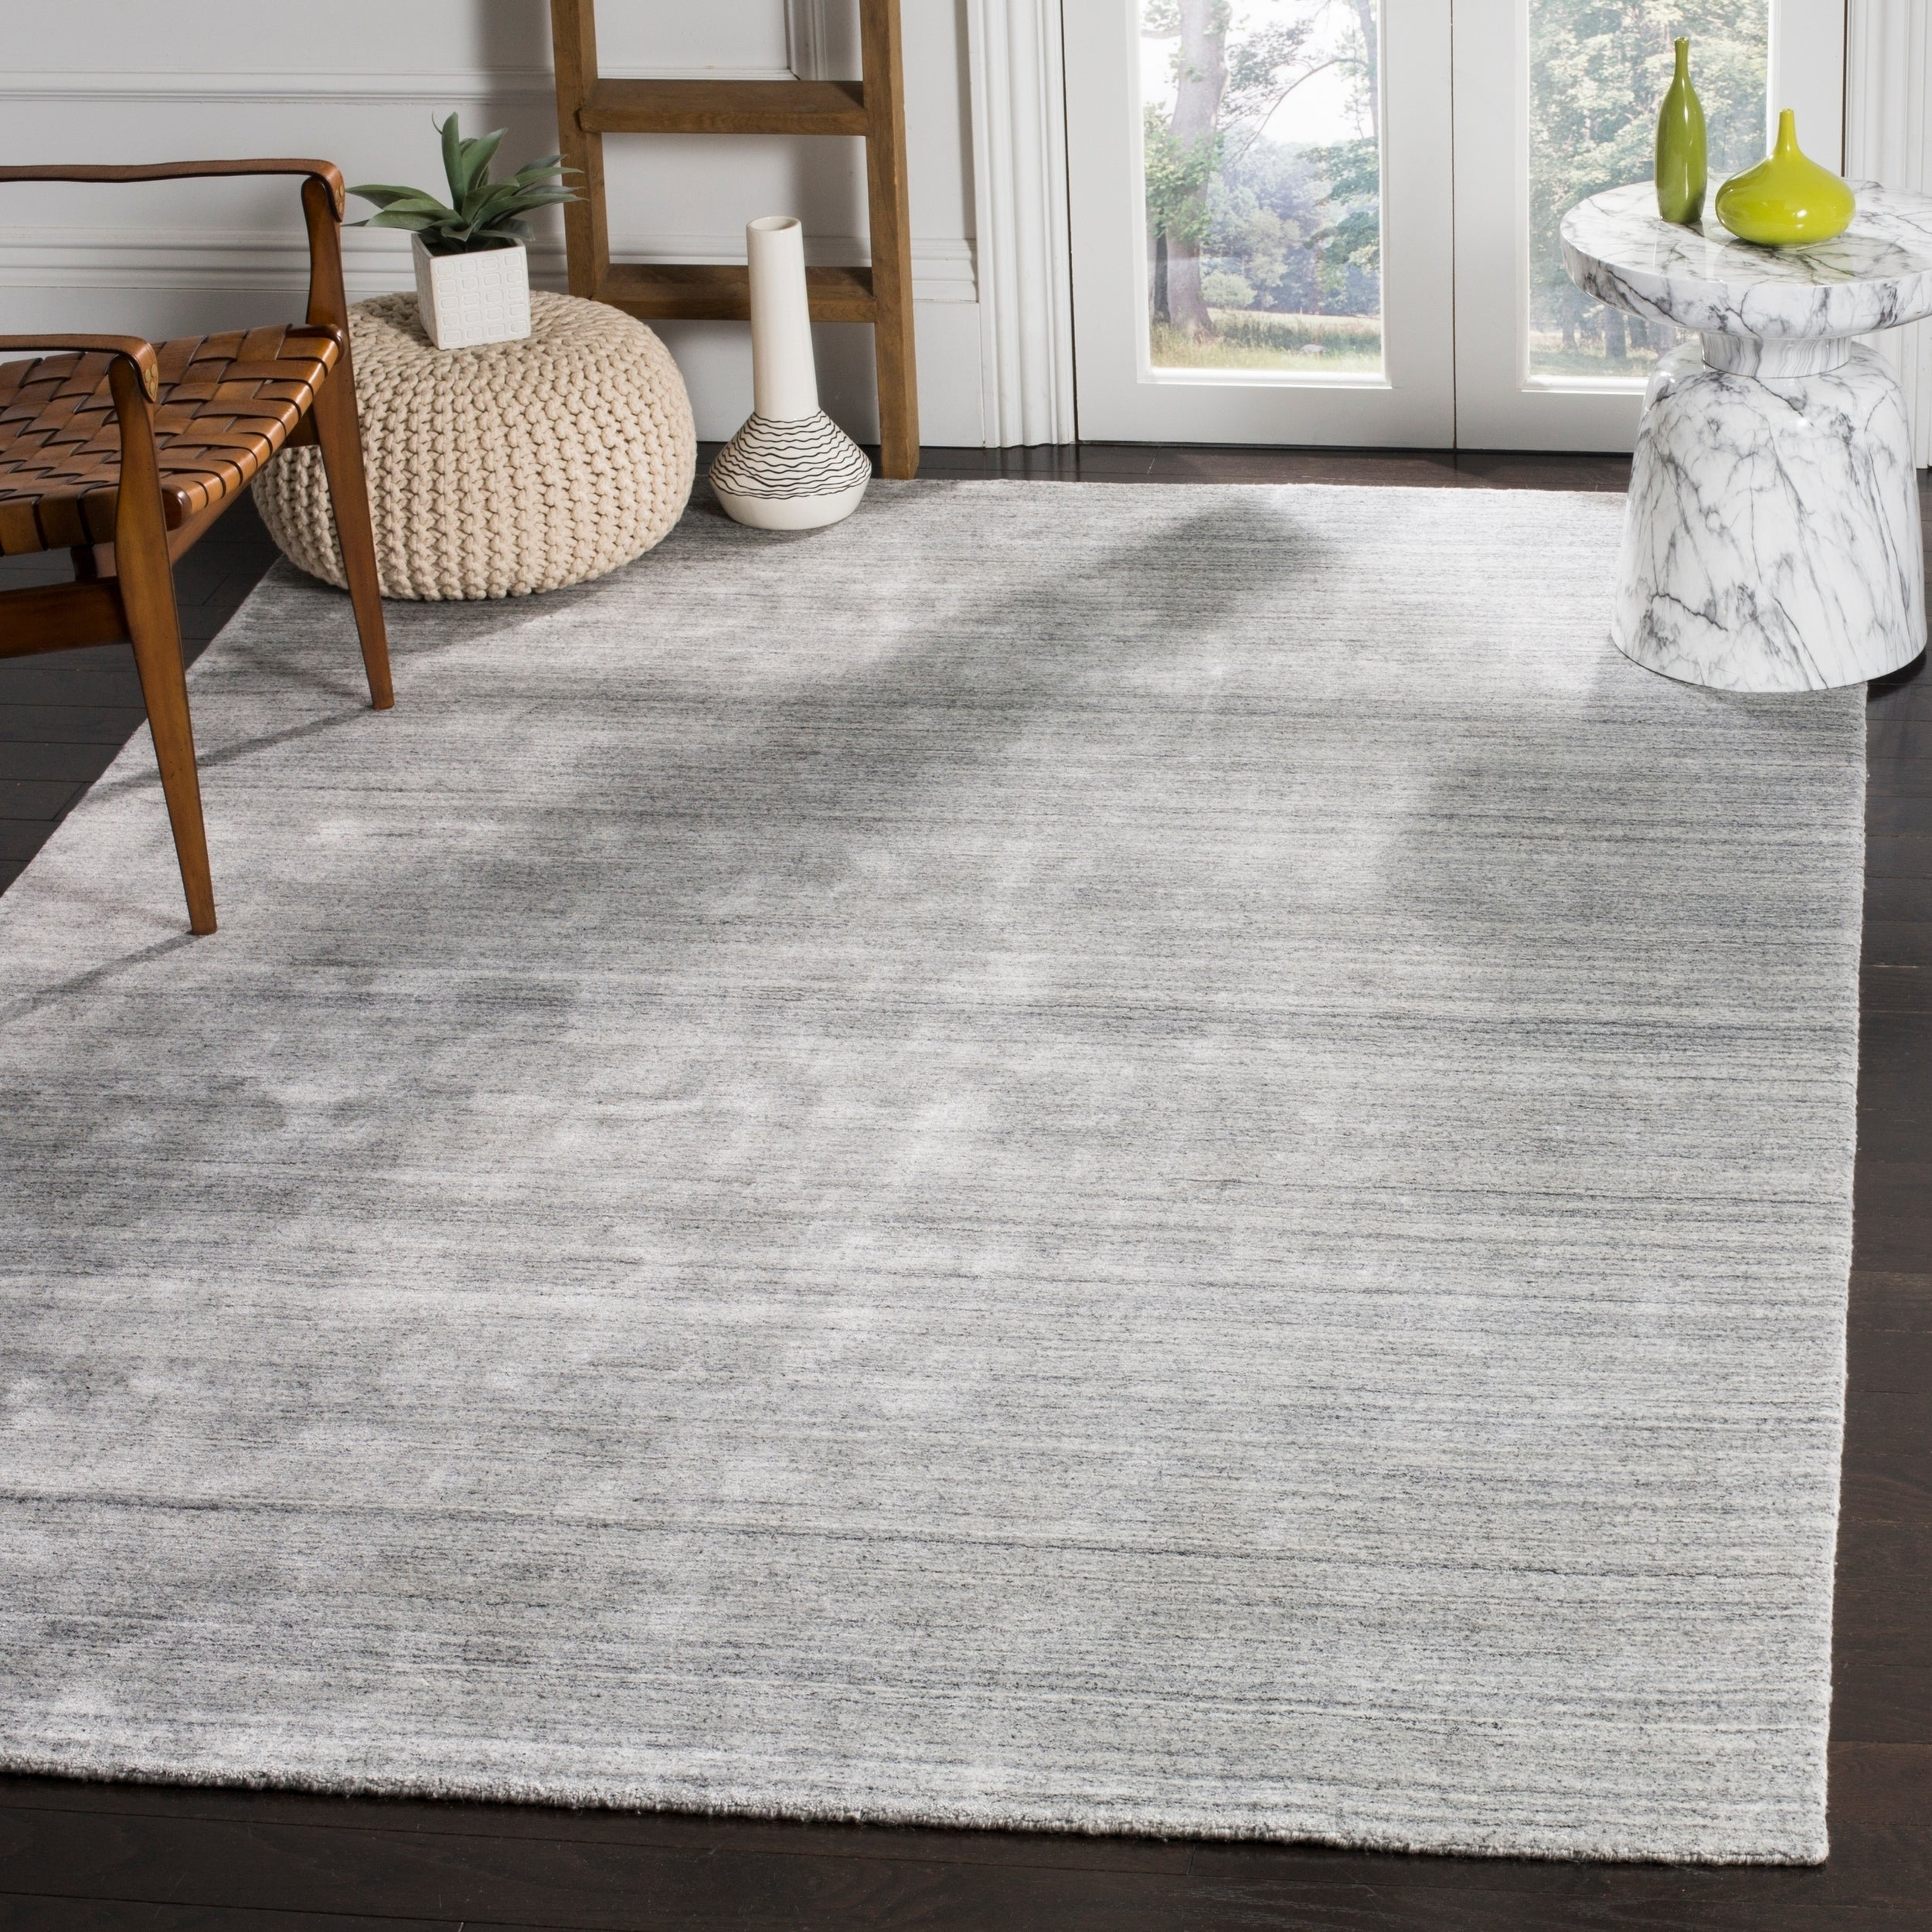 I want to buy a viscose carpet, is it worth it? 80